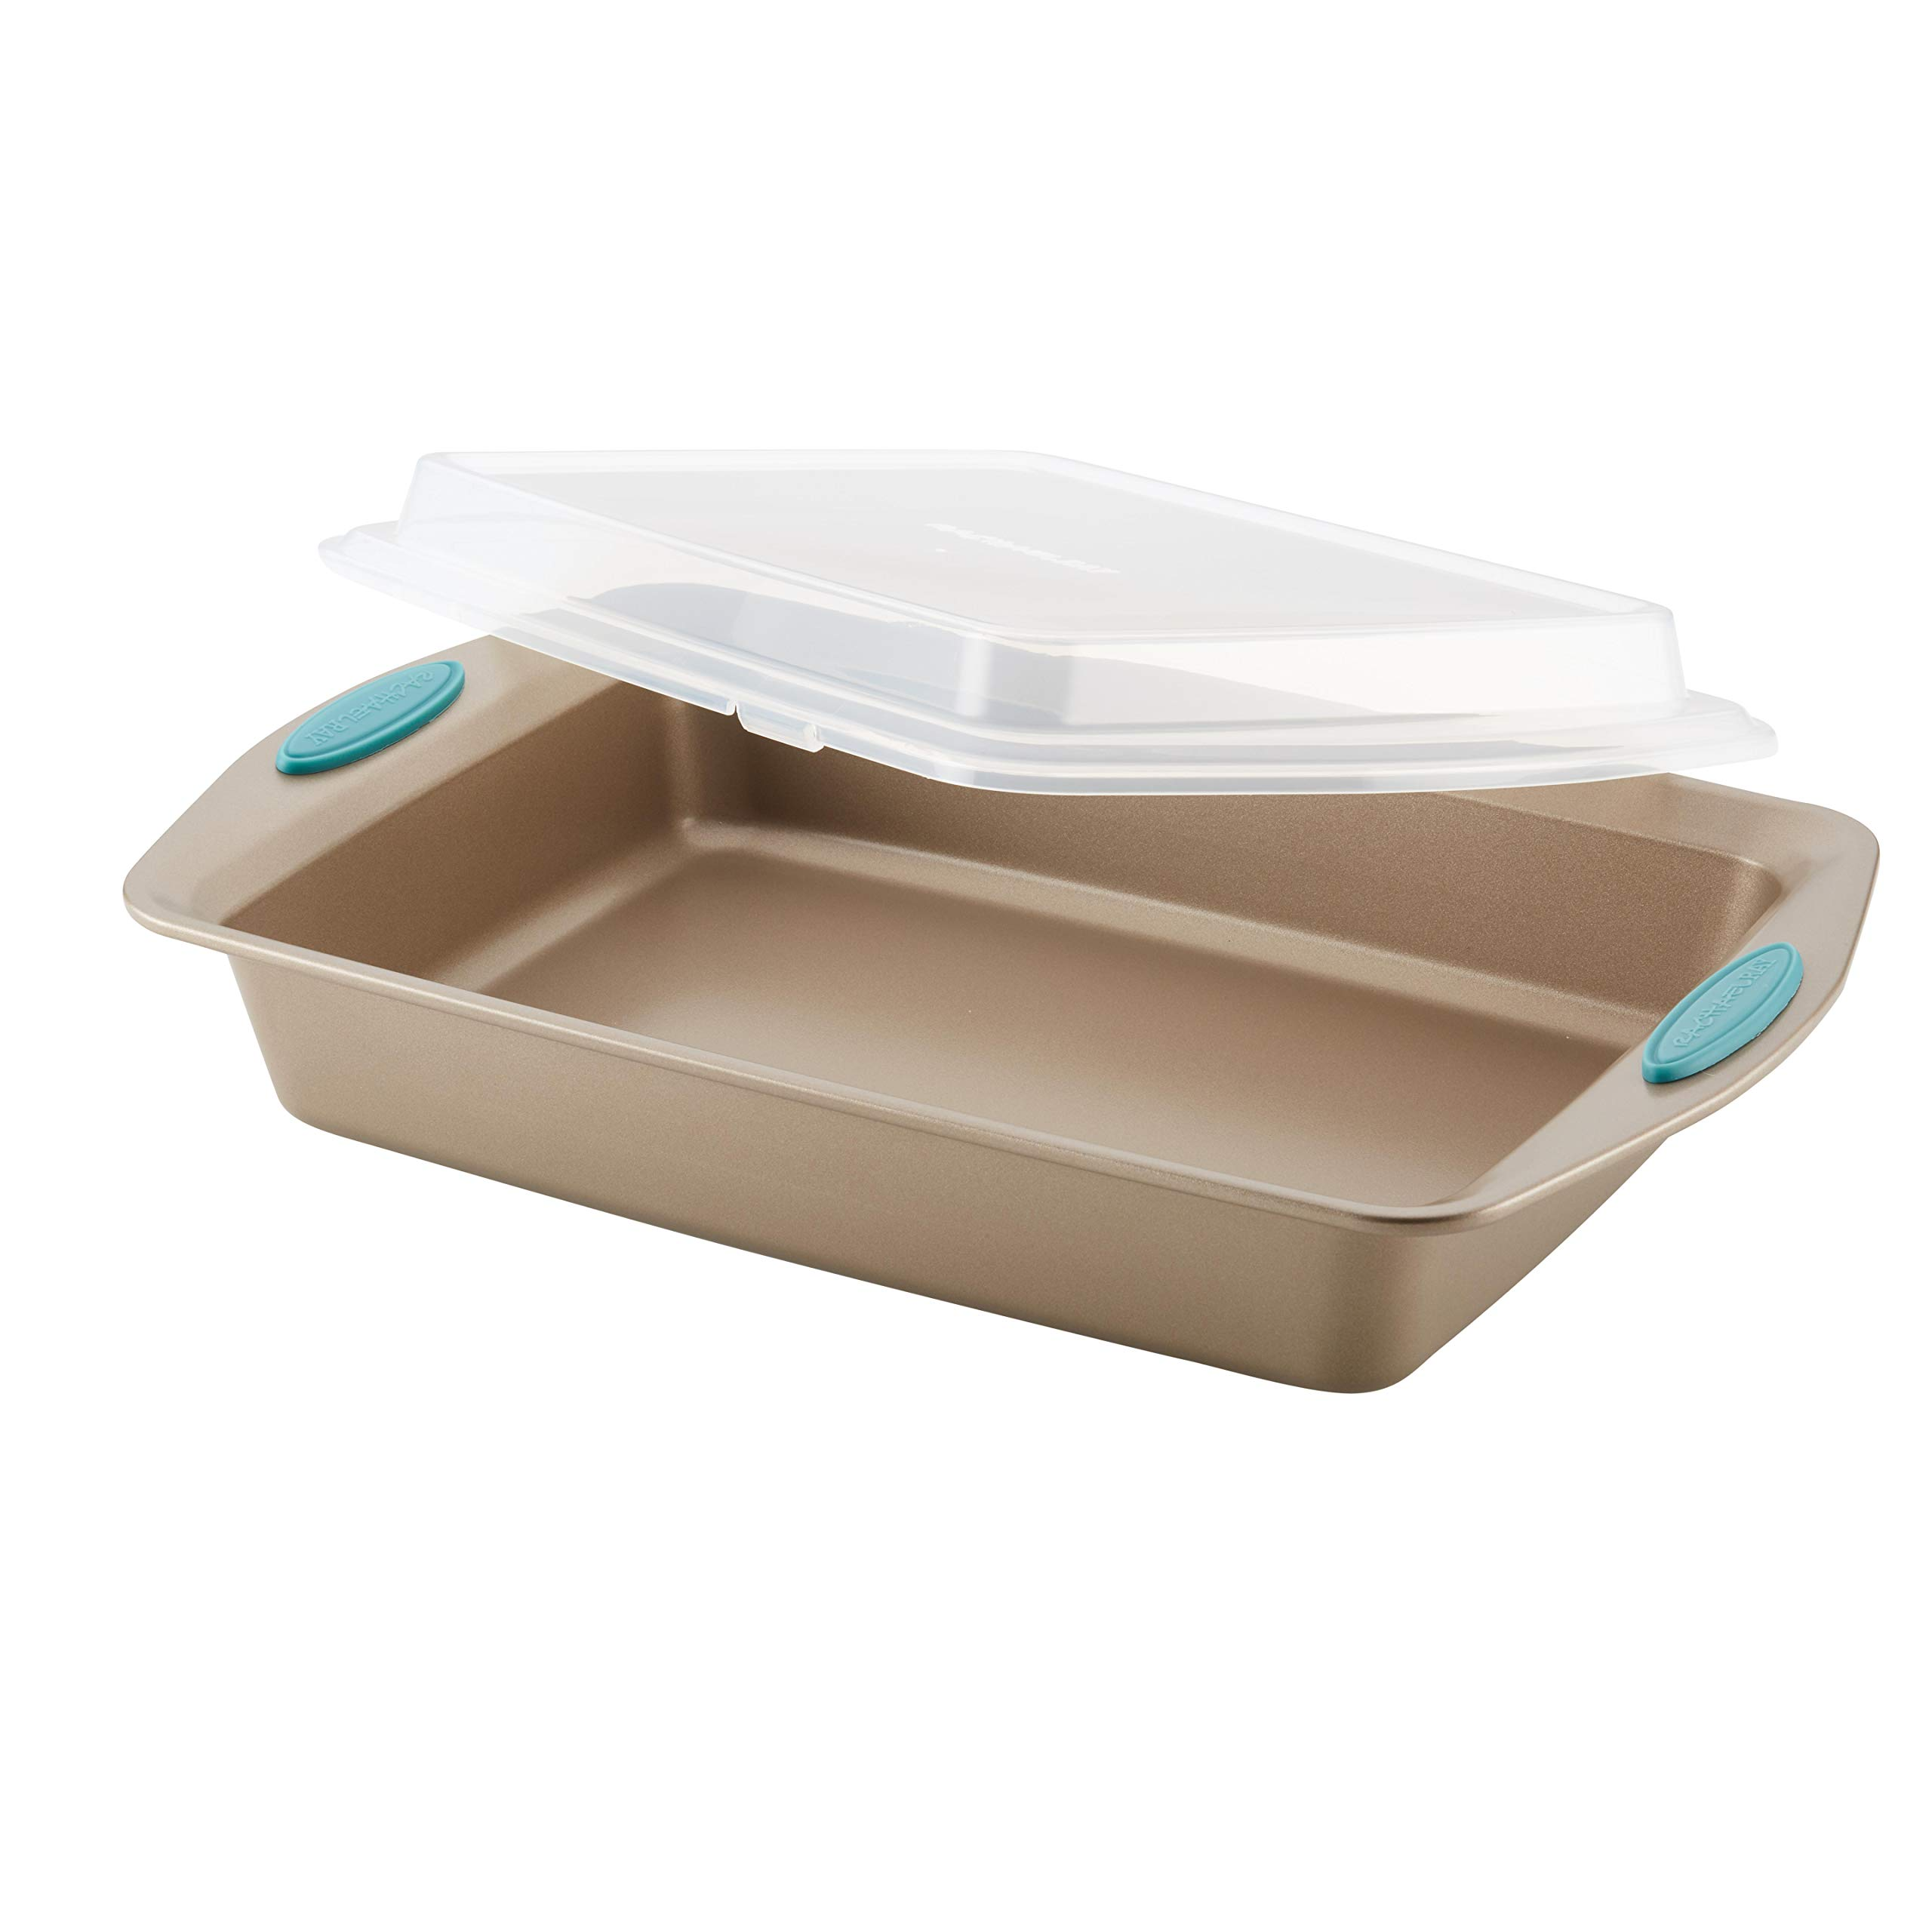 Rachael Ray Cucina Nonstick Bakeware 9-Inch by 13-Inch Covered Rectangle Cake Pan, Latte Brown with Agave Blue Handles by Rachael Ray